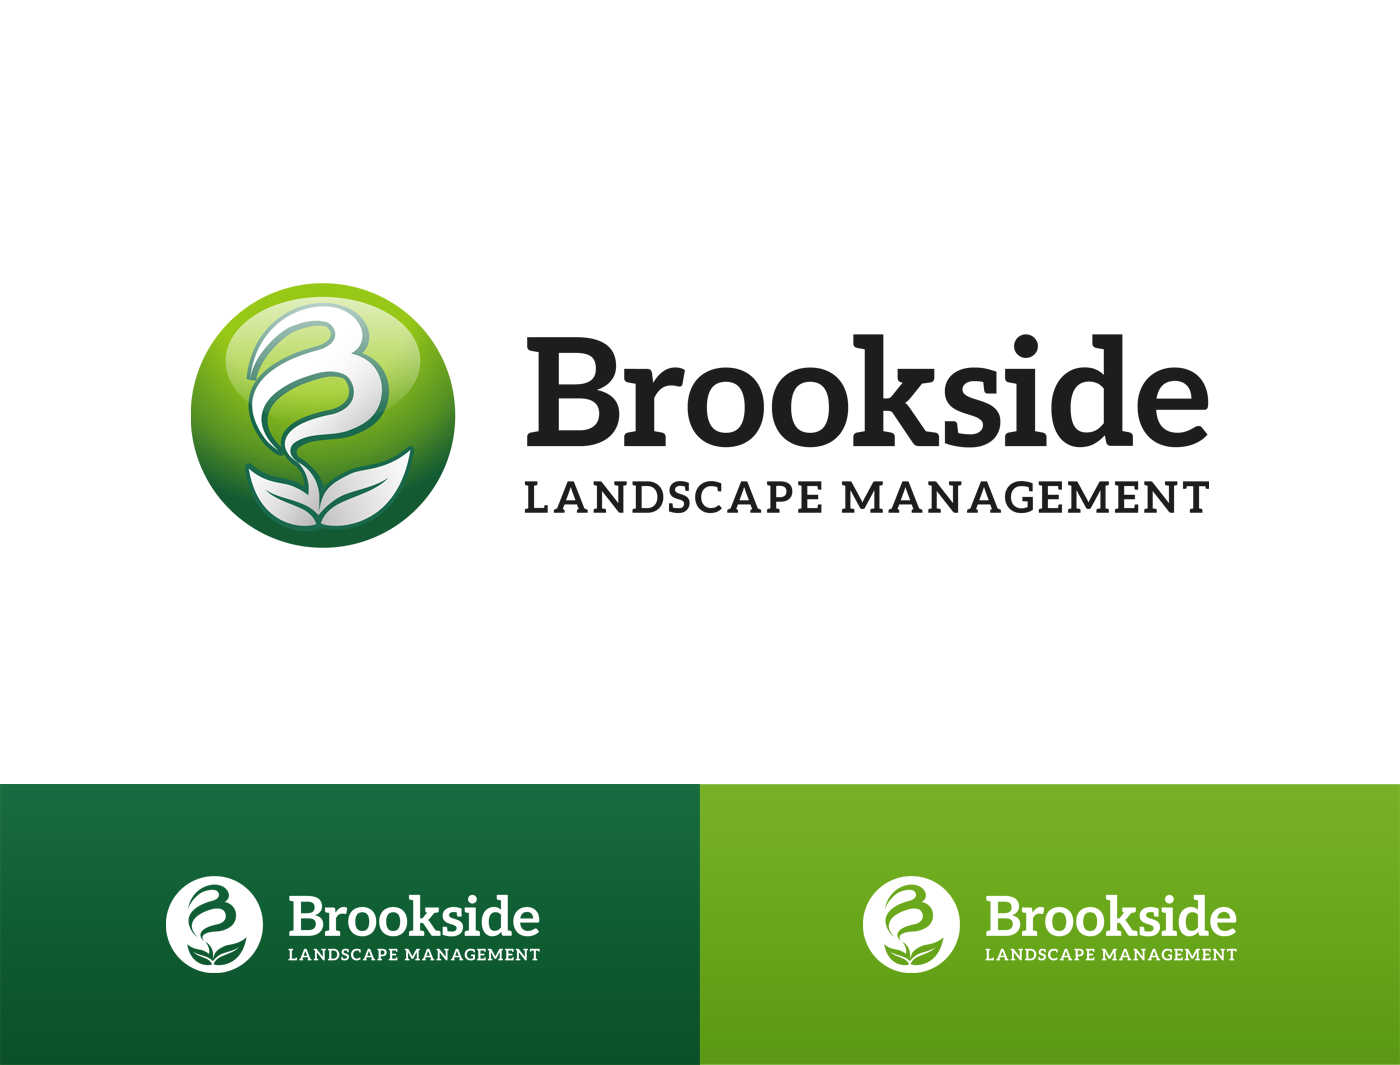 Logo Design by Alexander Osokin - Entry No. 81 in the Logo Design Contest New Logo Design for Brookside Landscape Management.